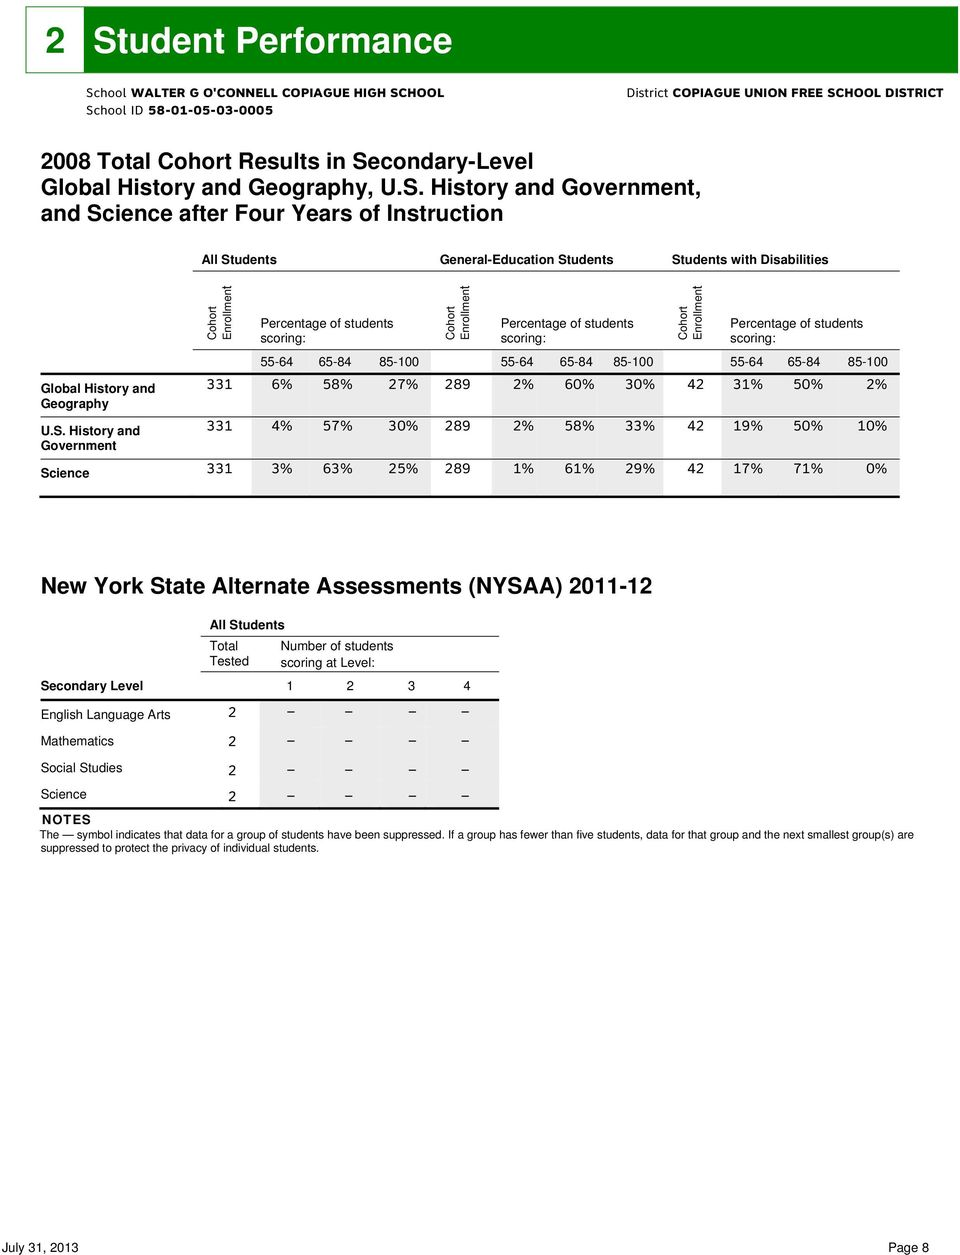 89 % % % 5 % % % % % New York State Alternate Assessments (NYSAA) - All students scoring at Level: Secondary Level English Language Arts Mathematics Social Studies Science NOTES The symbol indicates